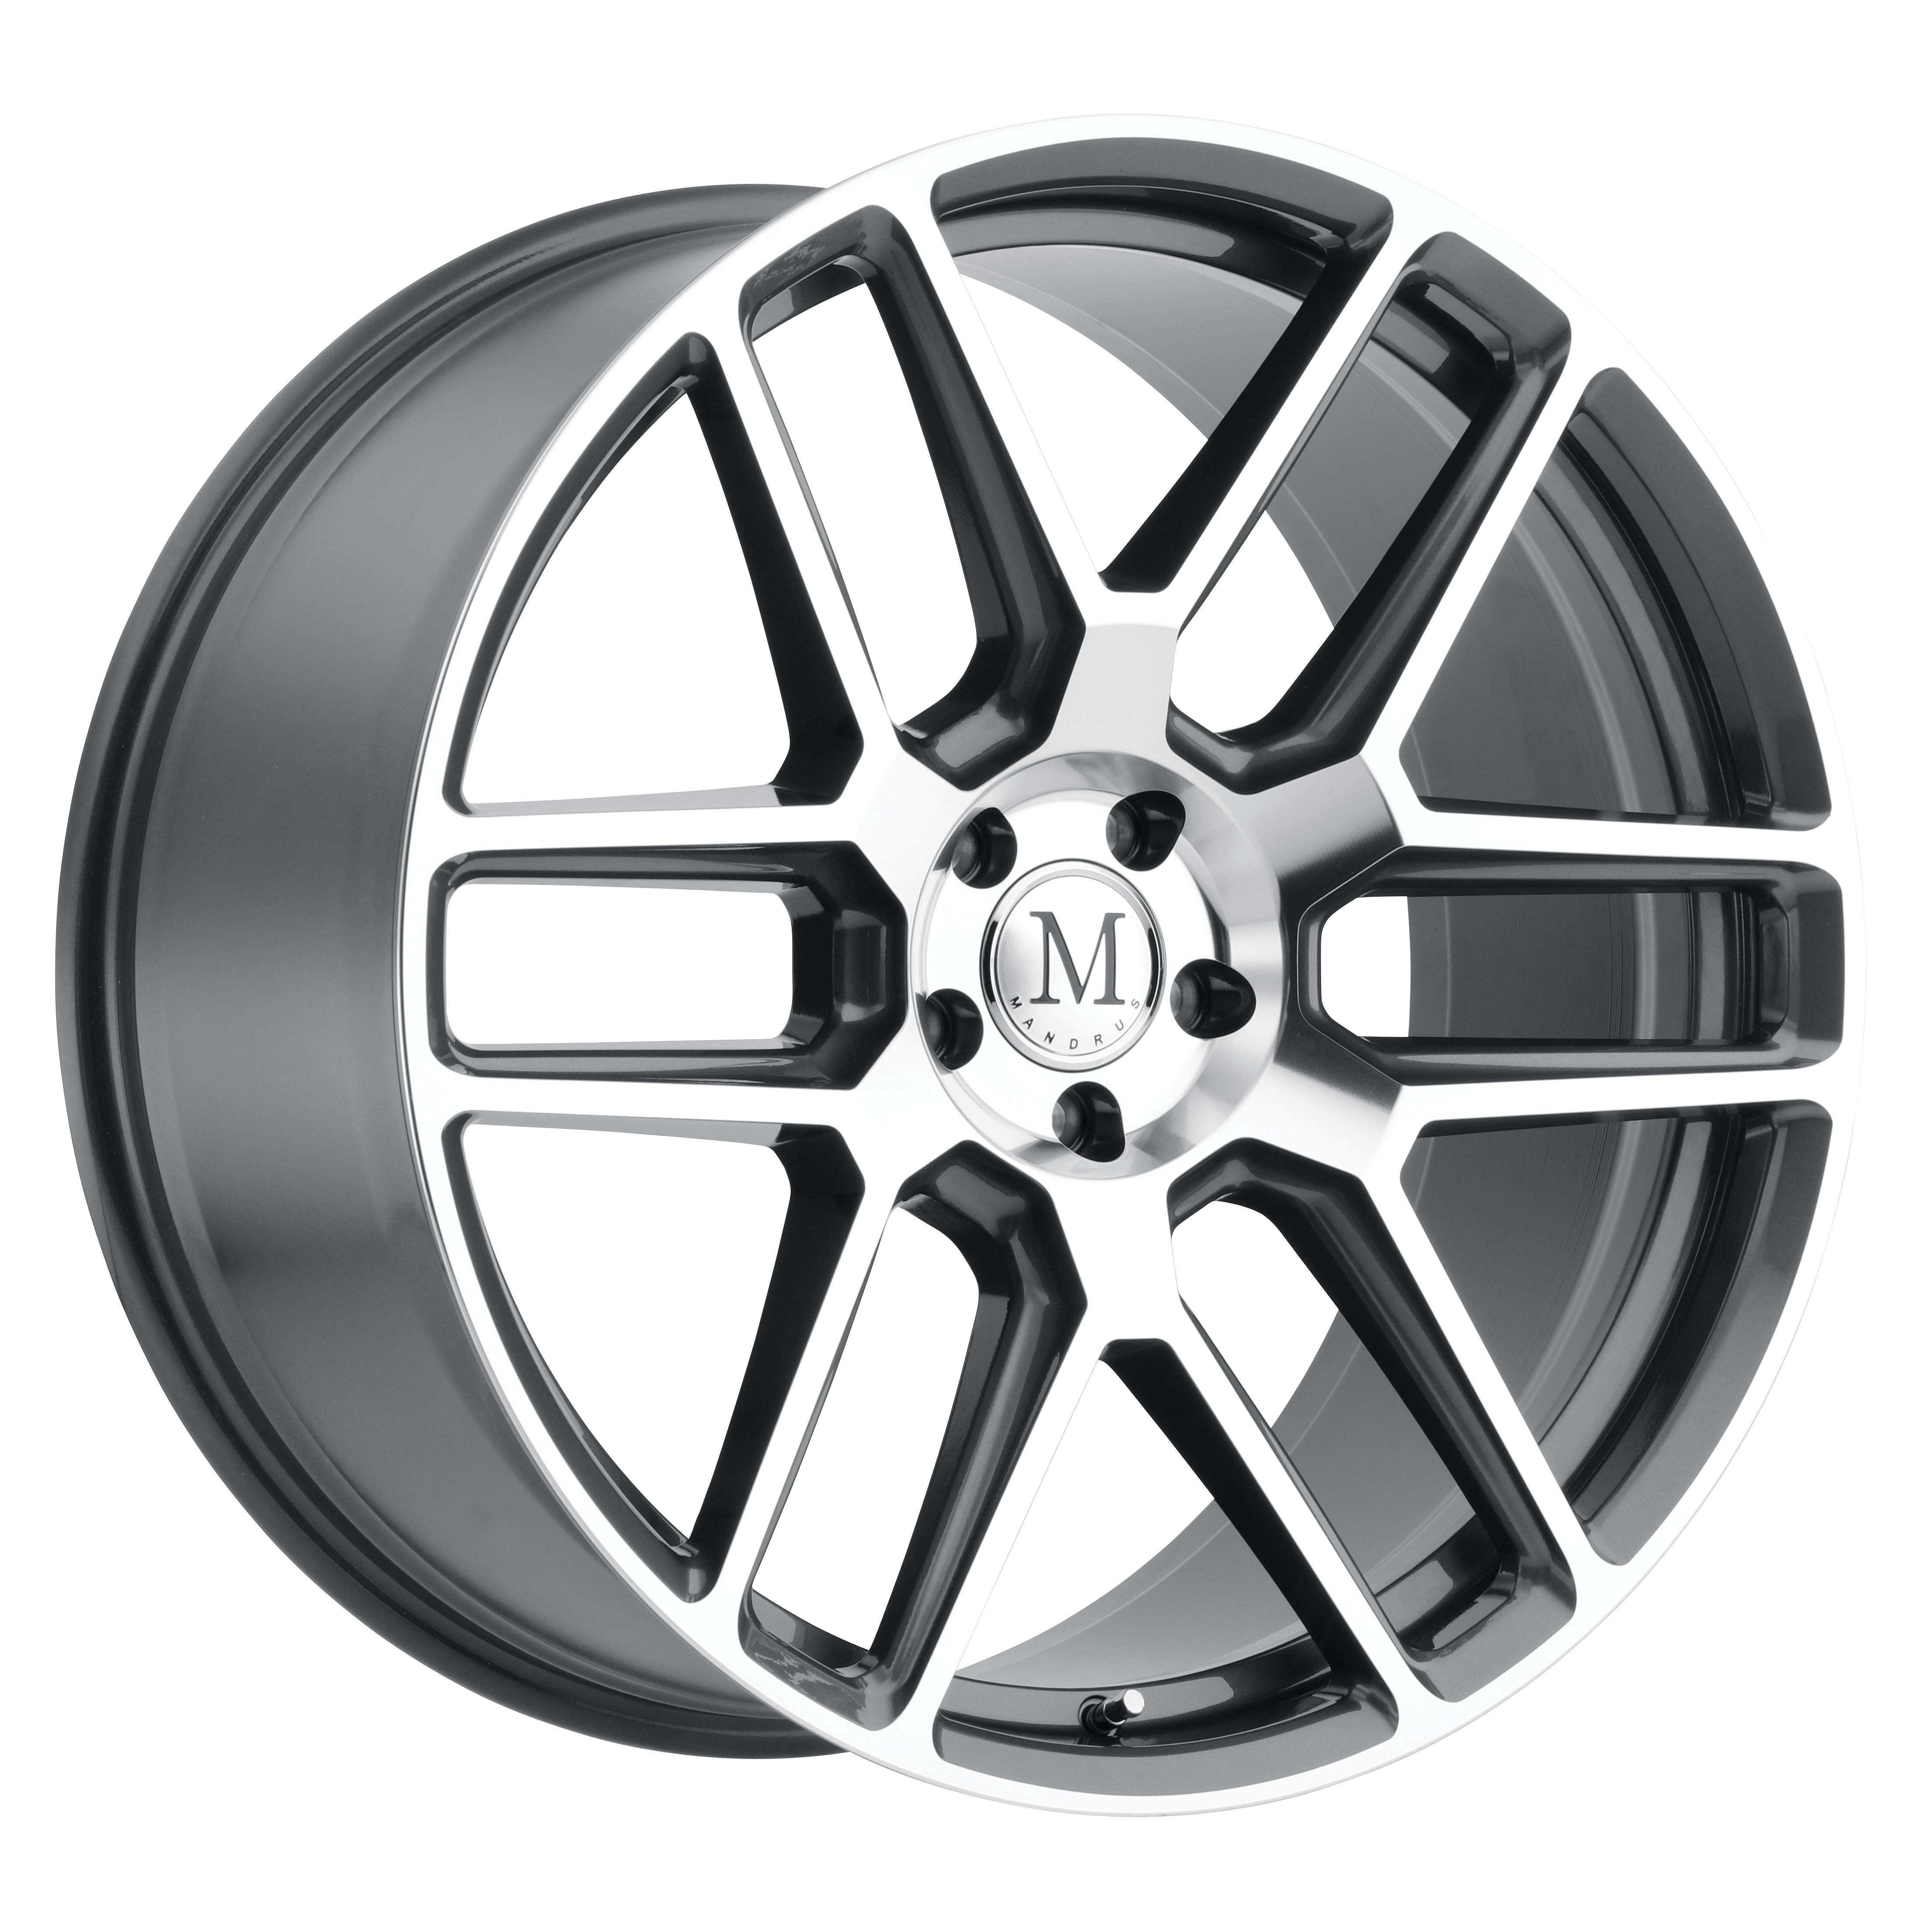 Otto mercedes benz wheels by mandrus for Mercedes benz lug pattern